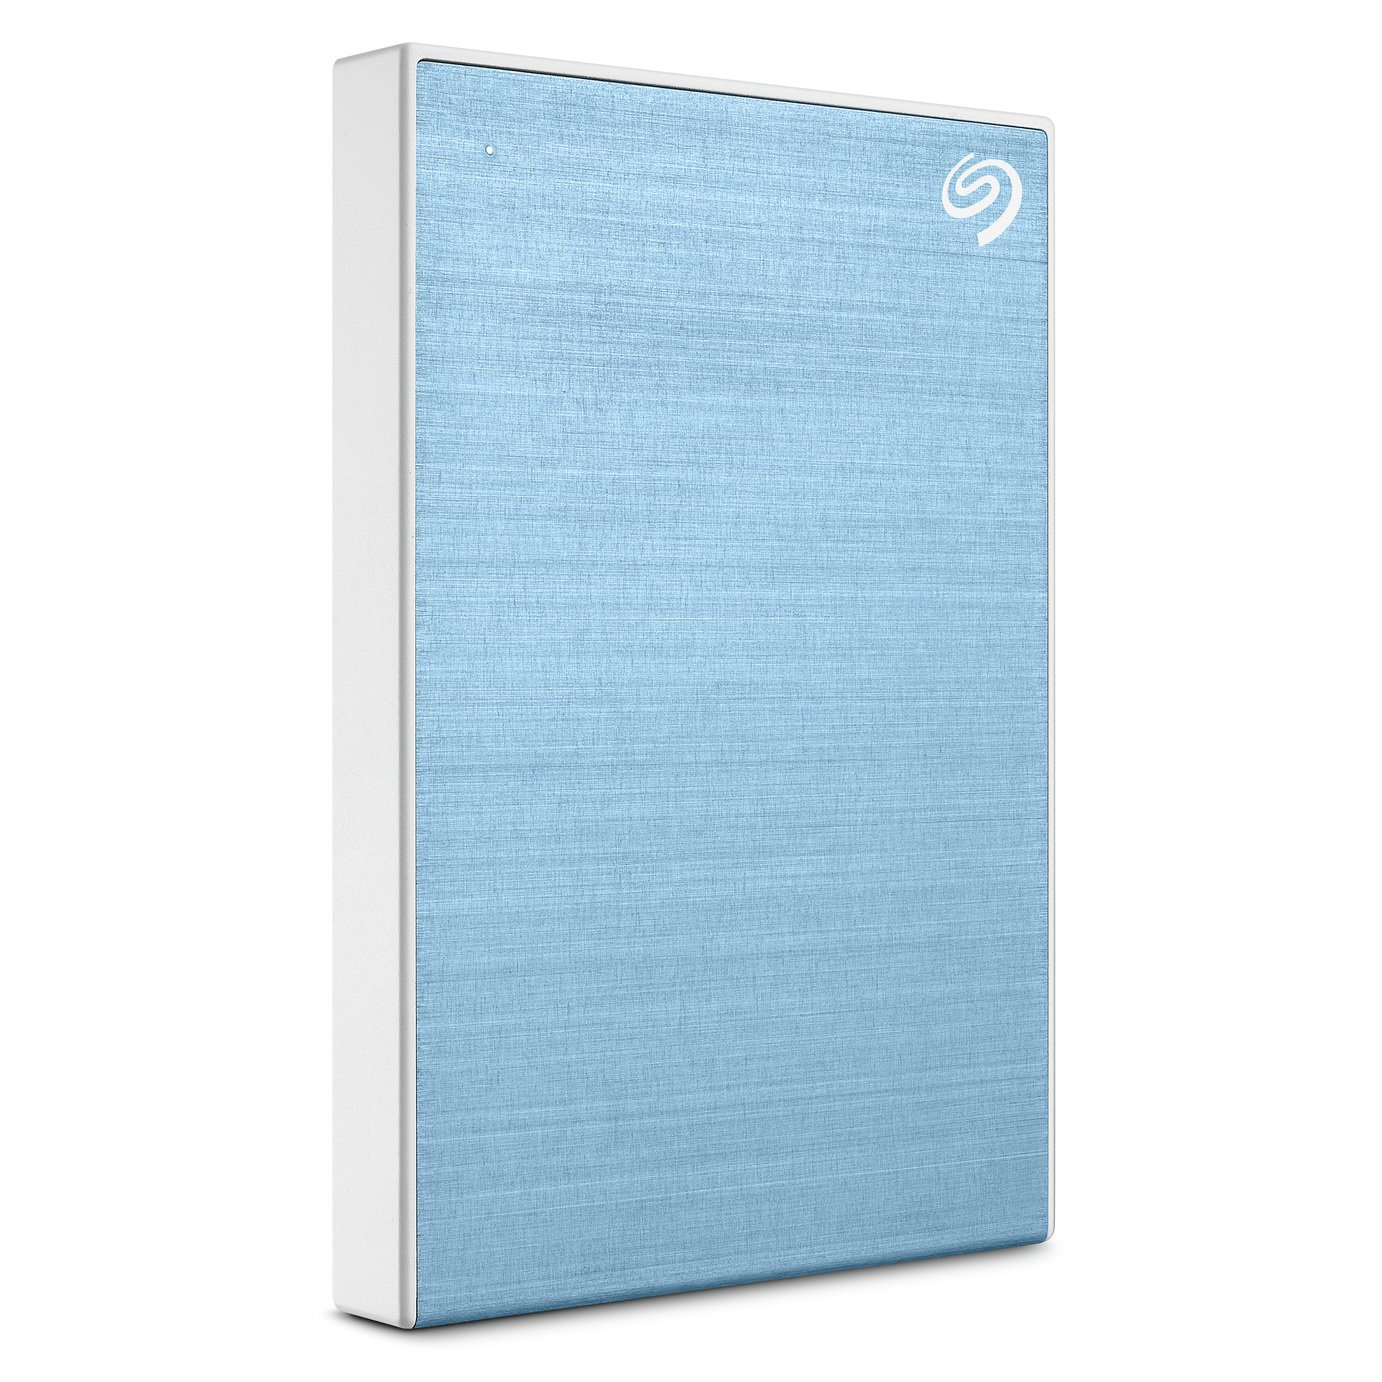 Seagate Backup Plus 2TB Portable Hard Drive - Blue